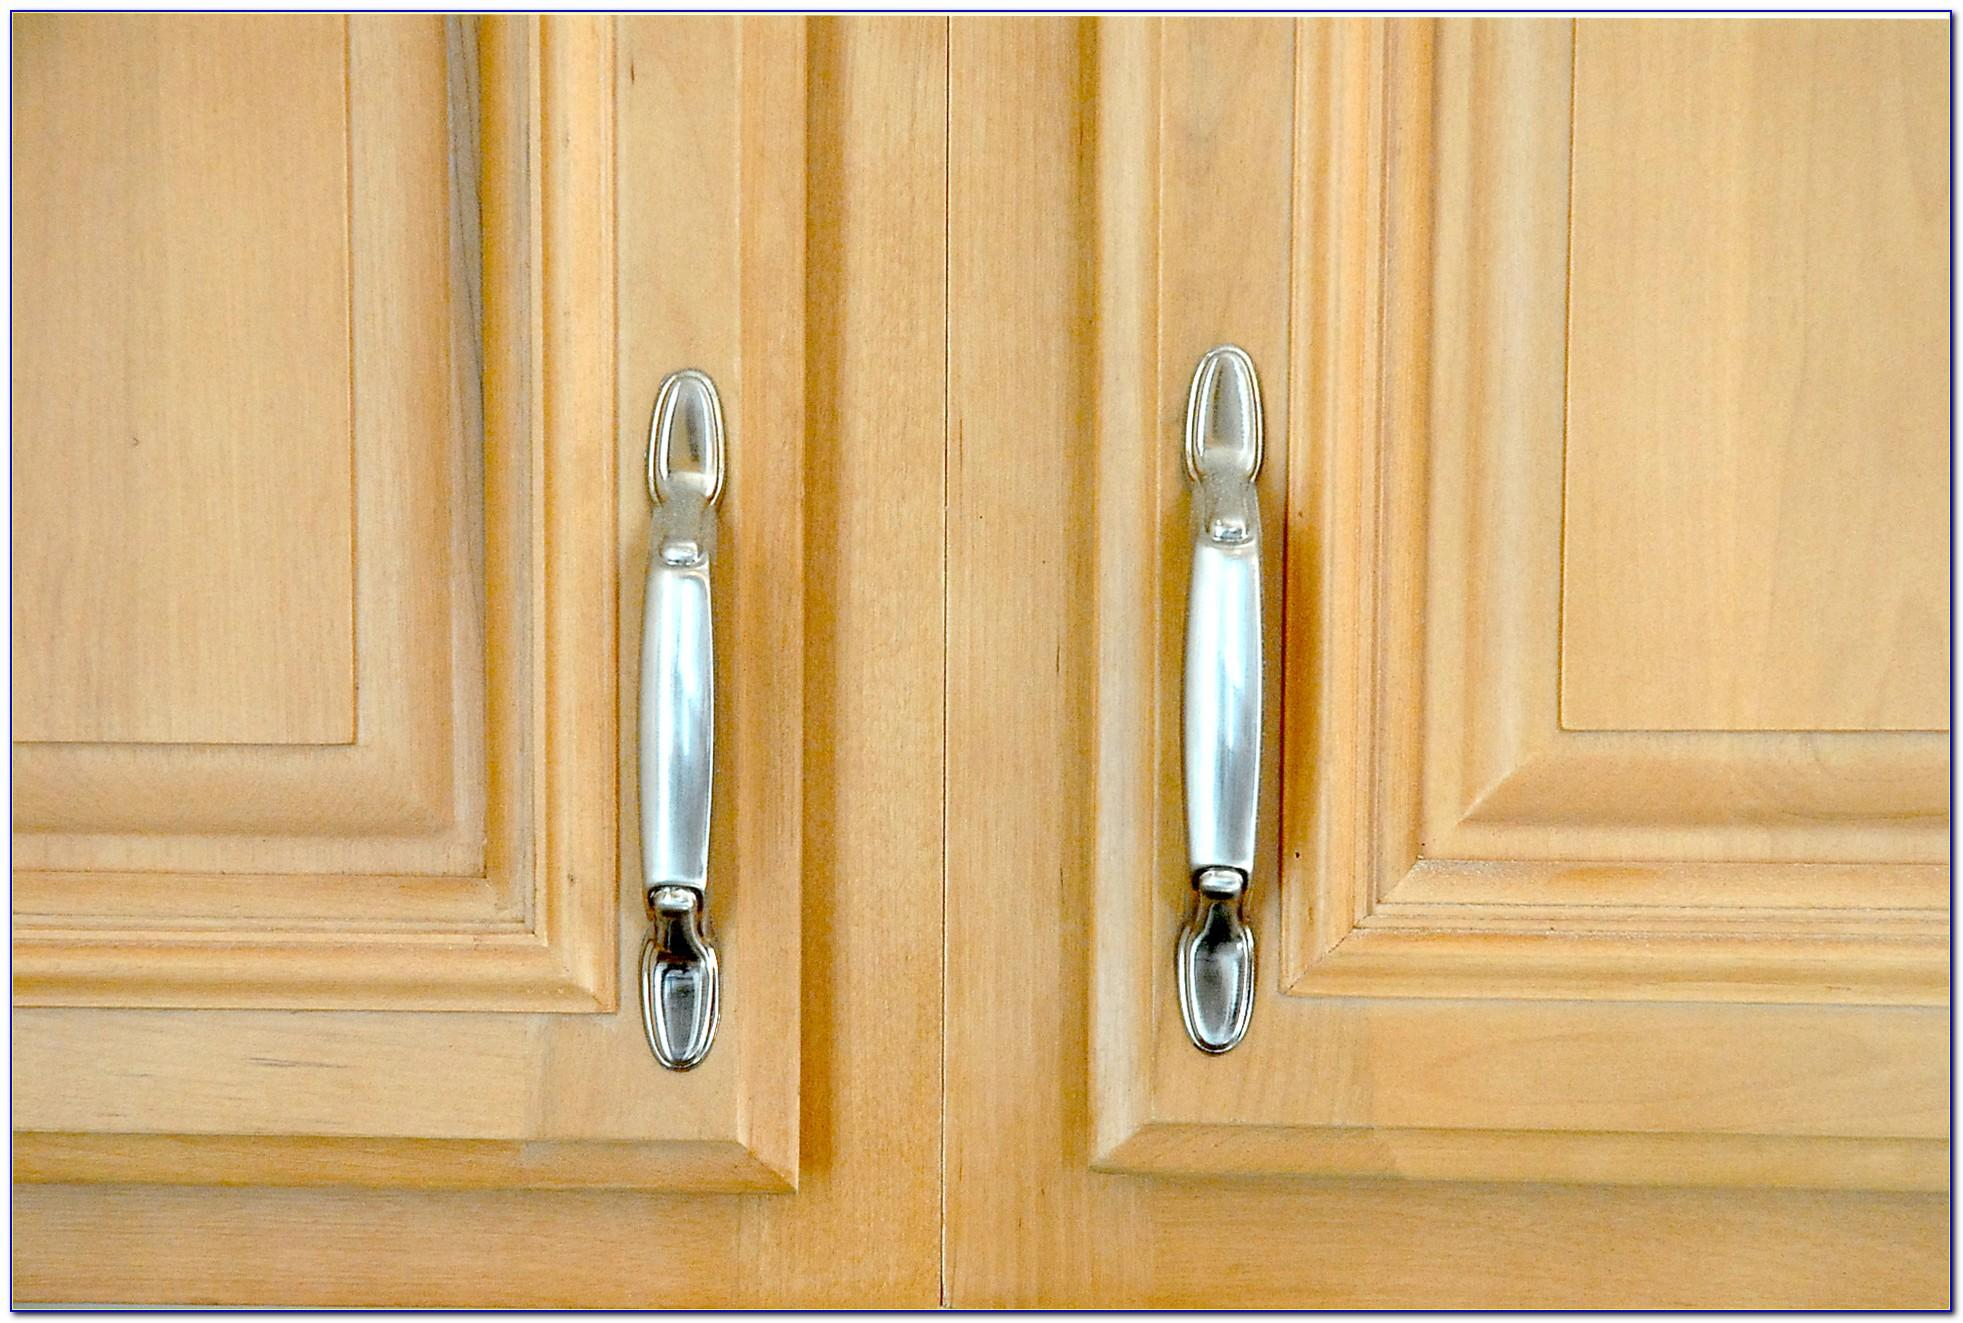 How To Make A Template For Installing Cabinet Handles